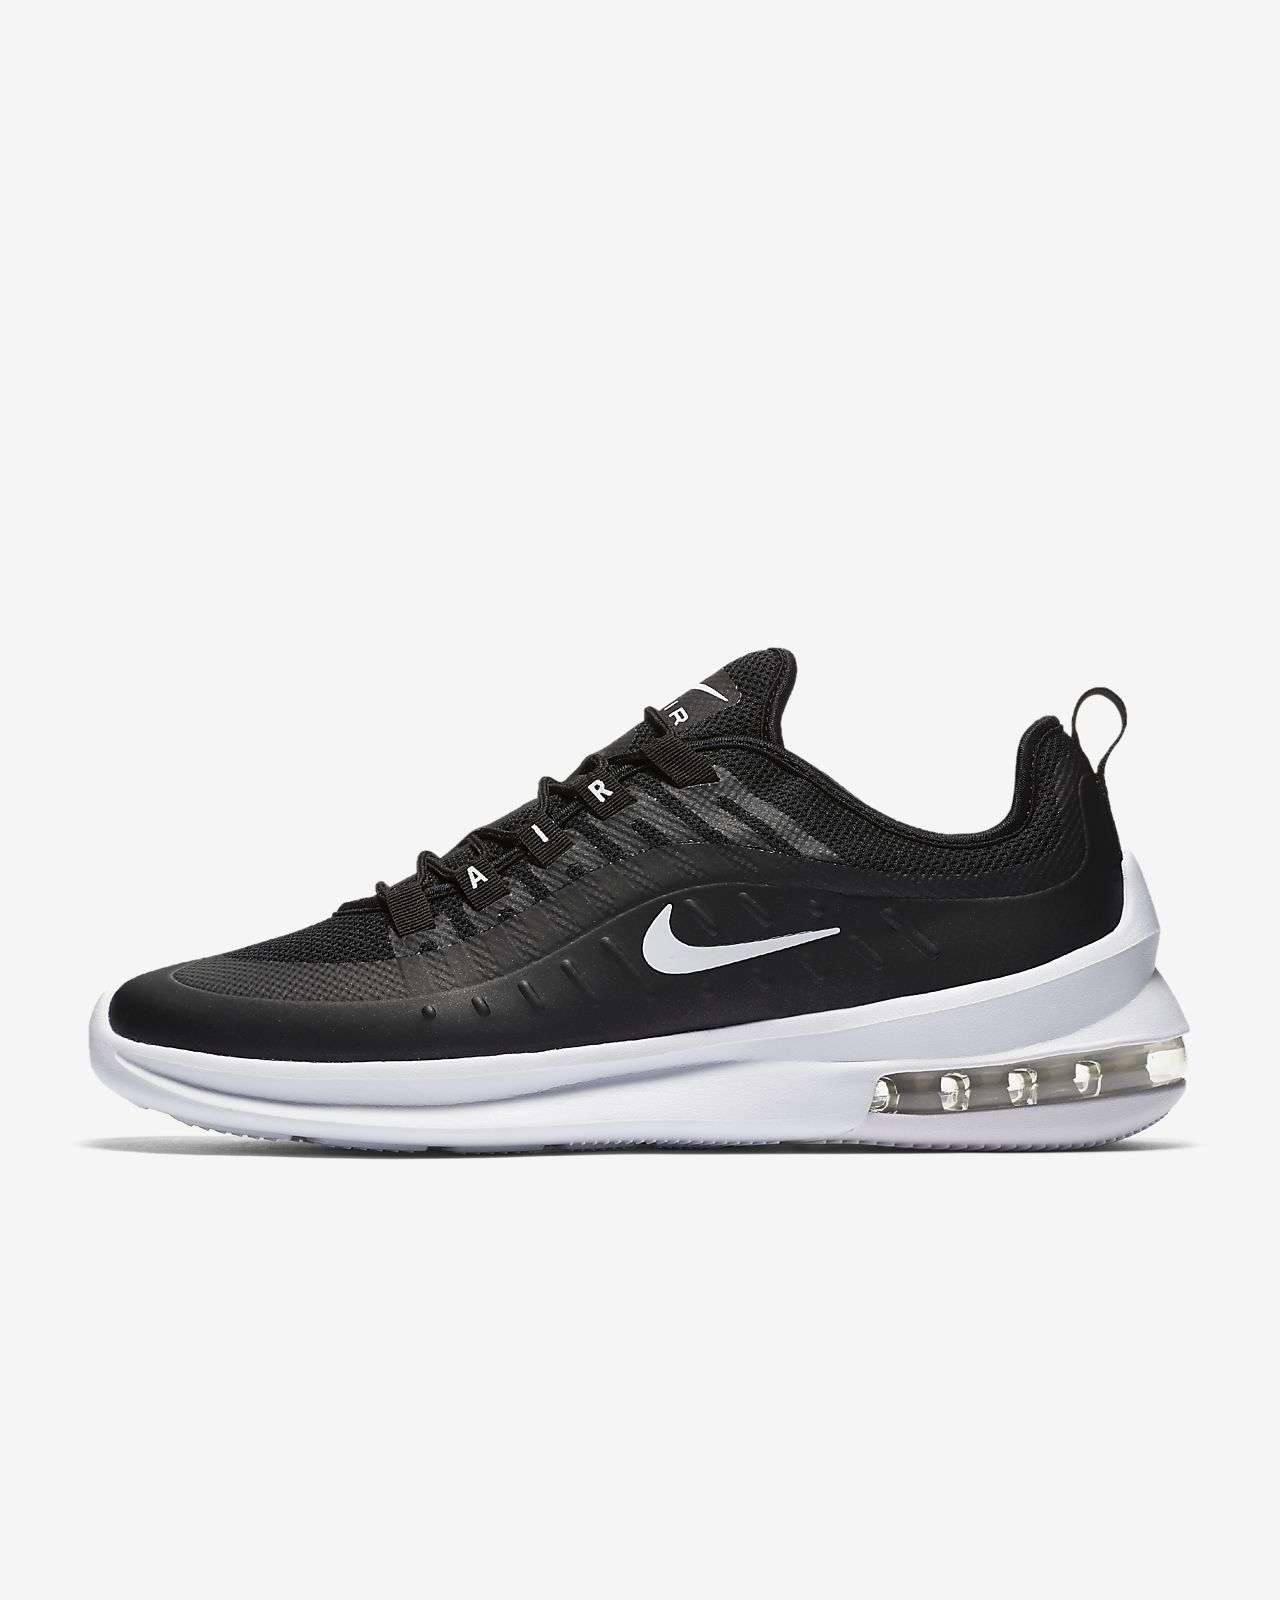 buy popular 10d55 604f9 Low Resolution Nike Air Max Axis Men s Shoe Nike Air Max Axis Men s Shoe